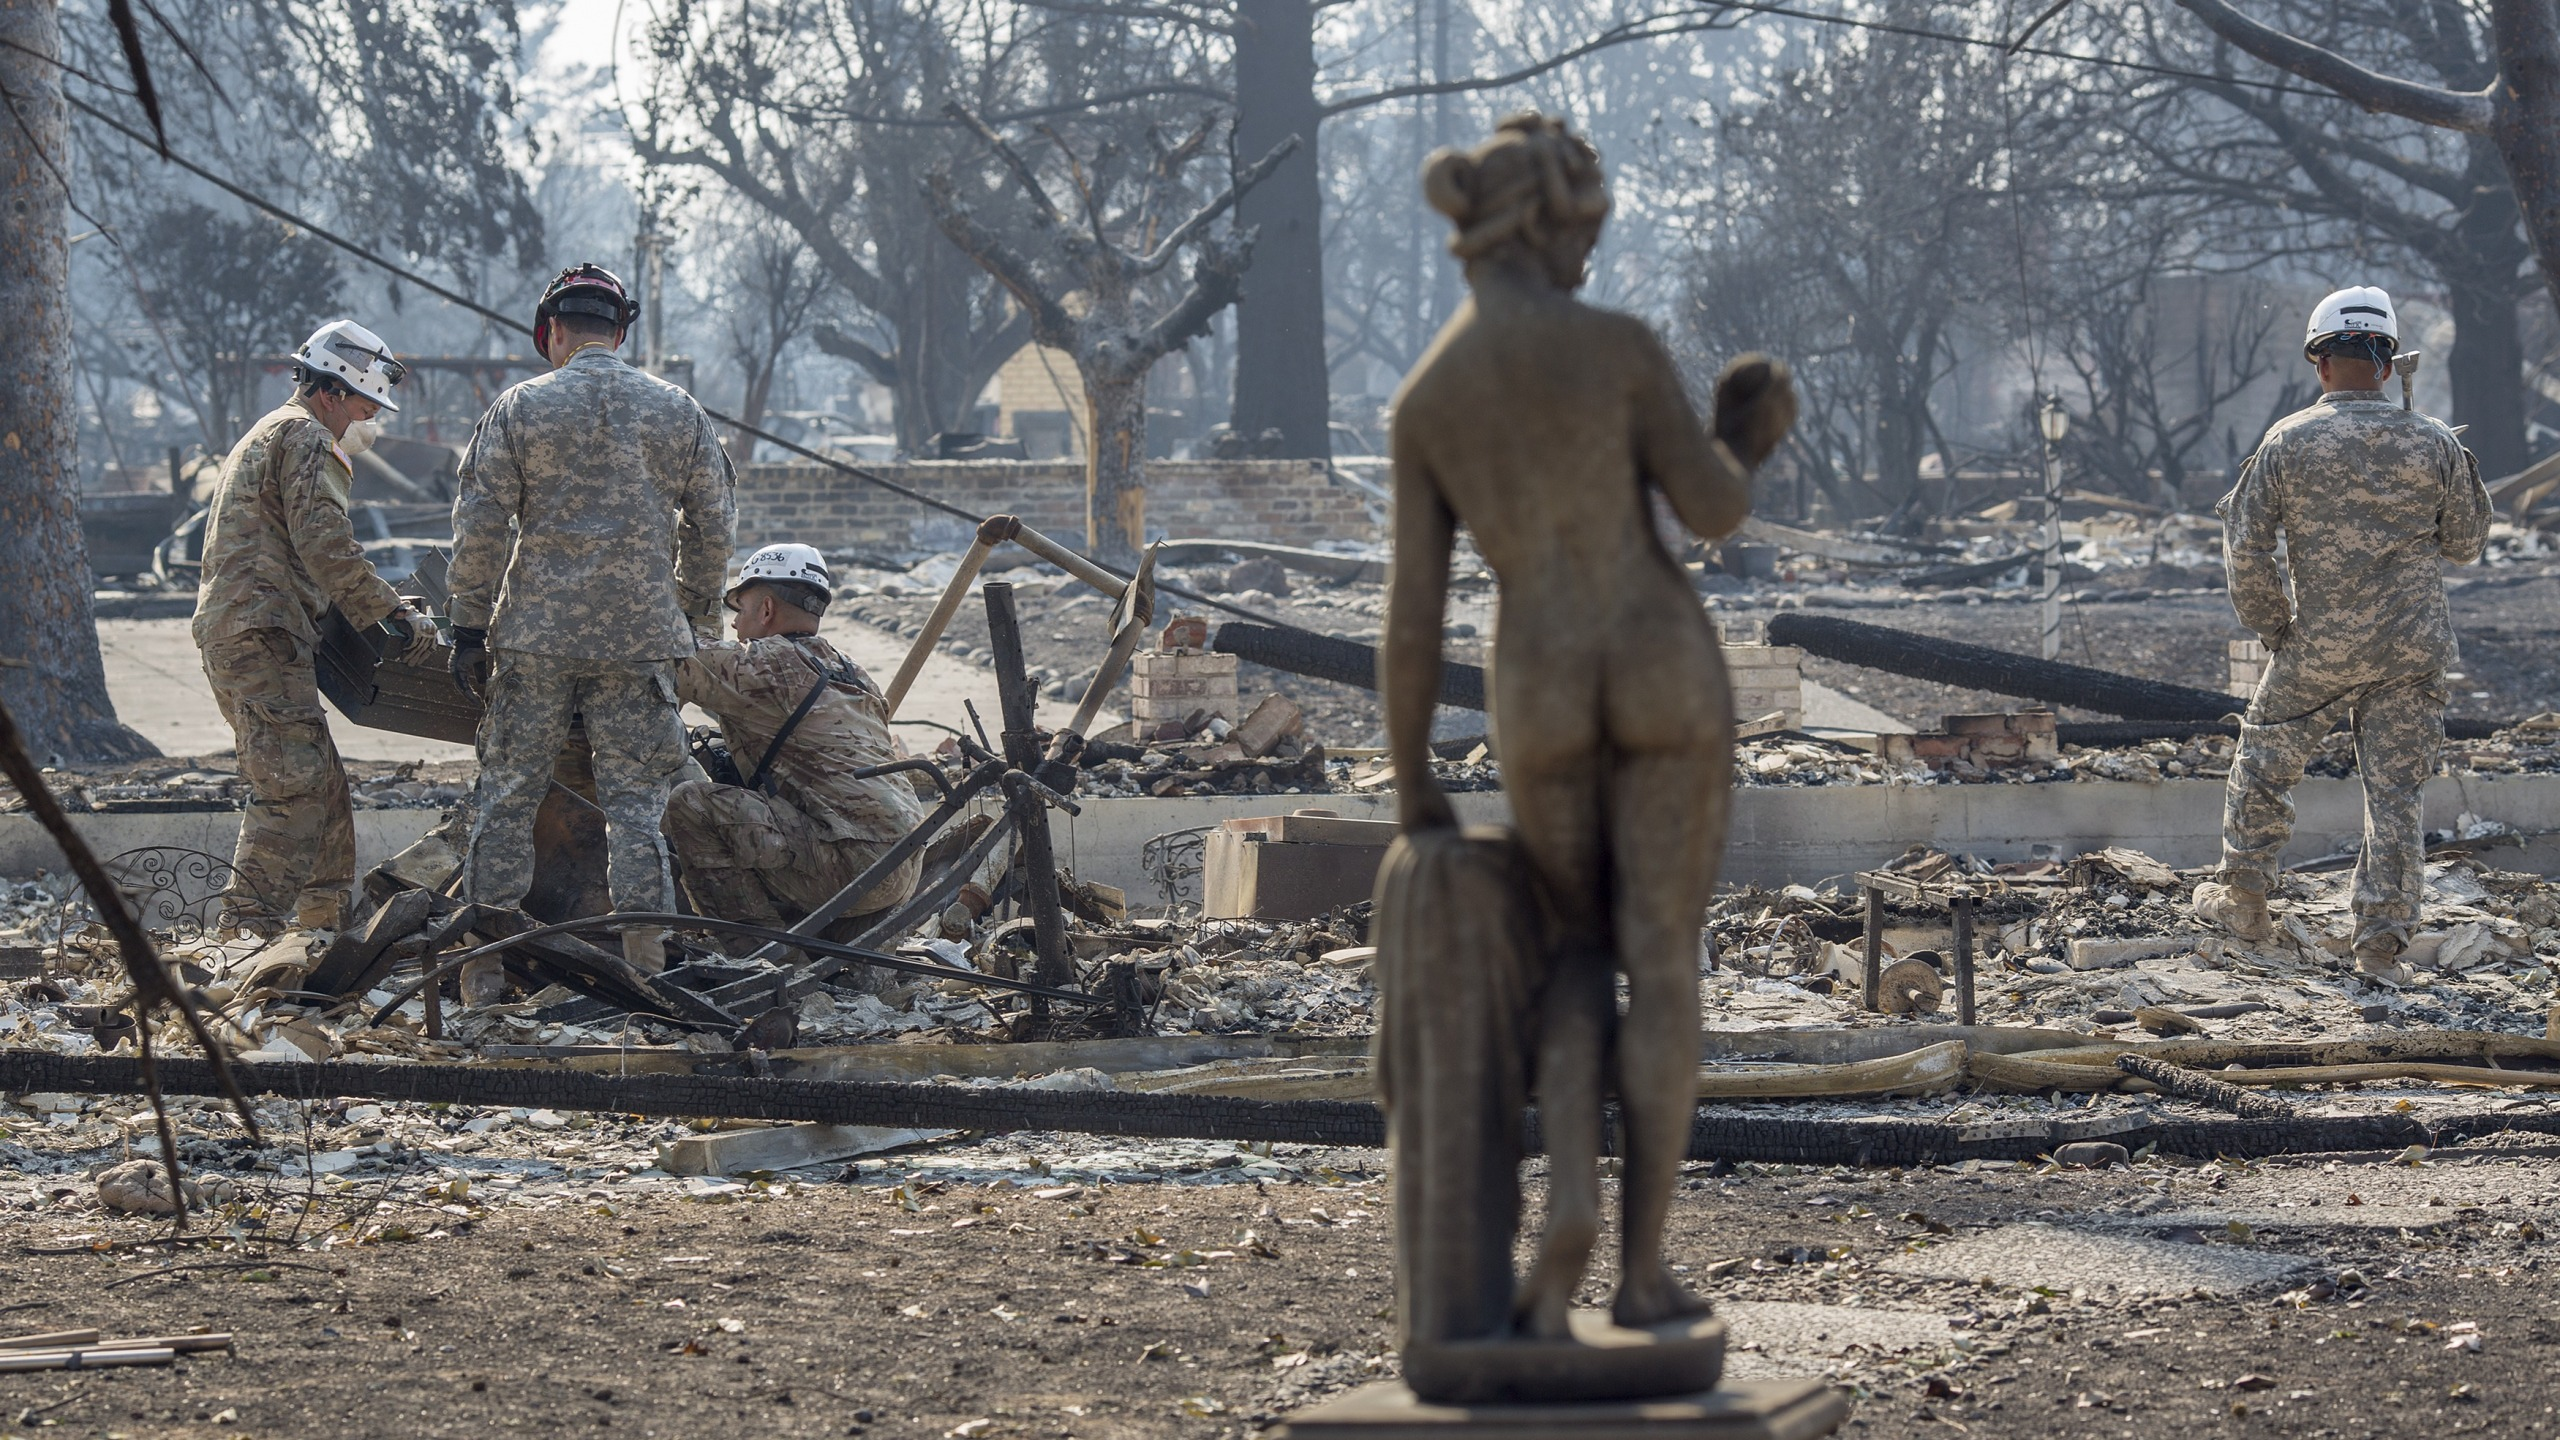 California National Guard troops search burned homes near Mark West Springs Road and Old Redwood Highway on Oct. 15, 2017 in Santa Rosa. (Credit: David McNew/Getty Images)